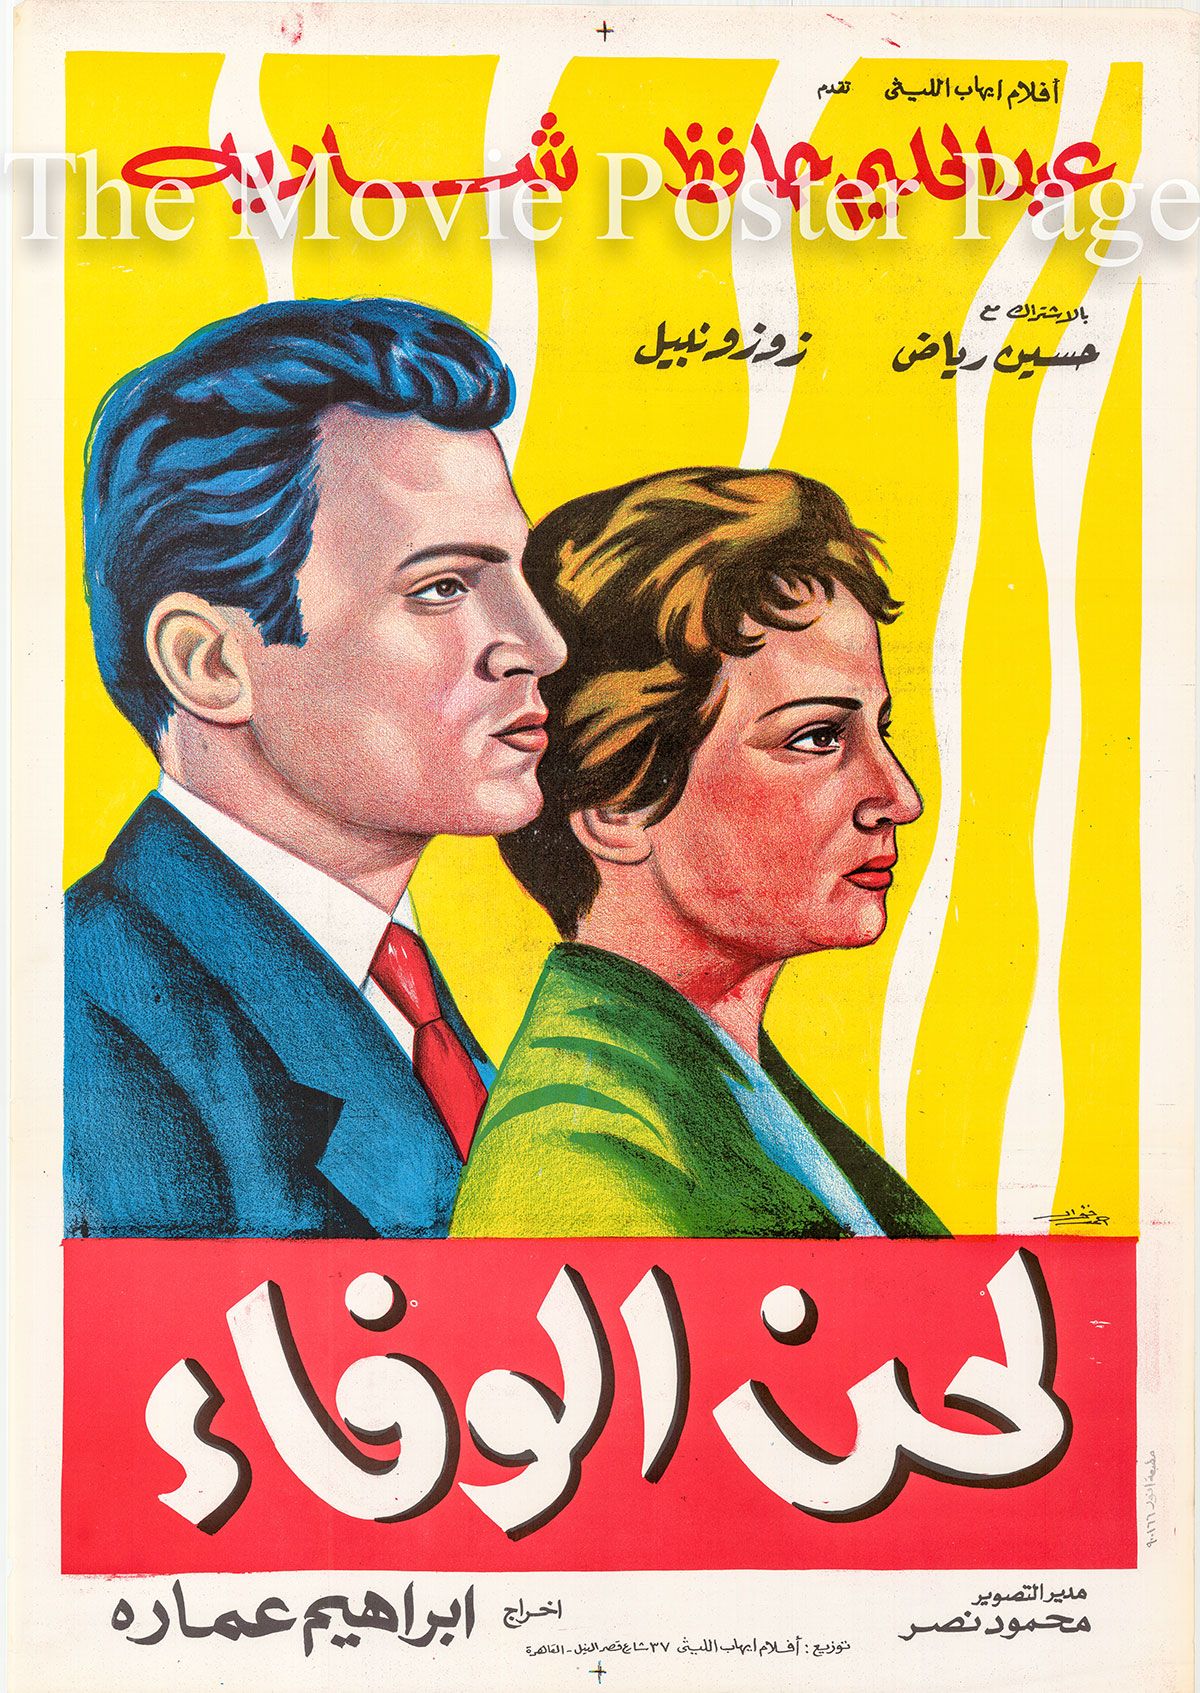 Pictured is an Egyptian promotional poster for the 1955 Ibrahim Emara film Song of Truth starring Abdel Halim Hafez and Shadia.